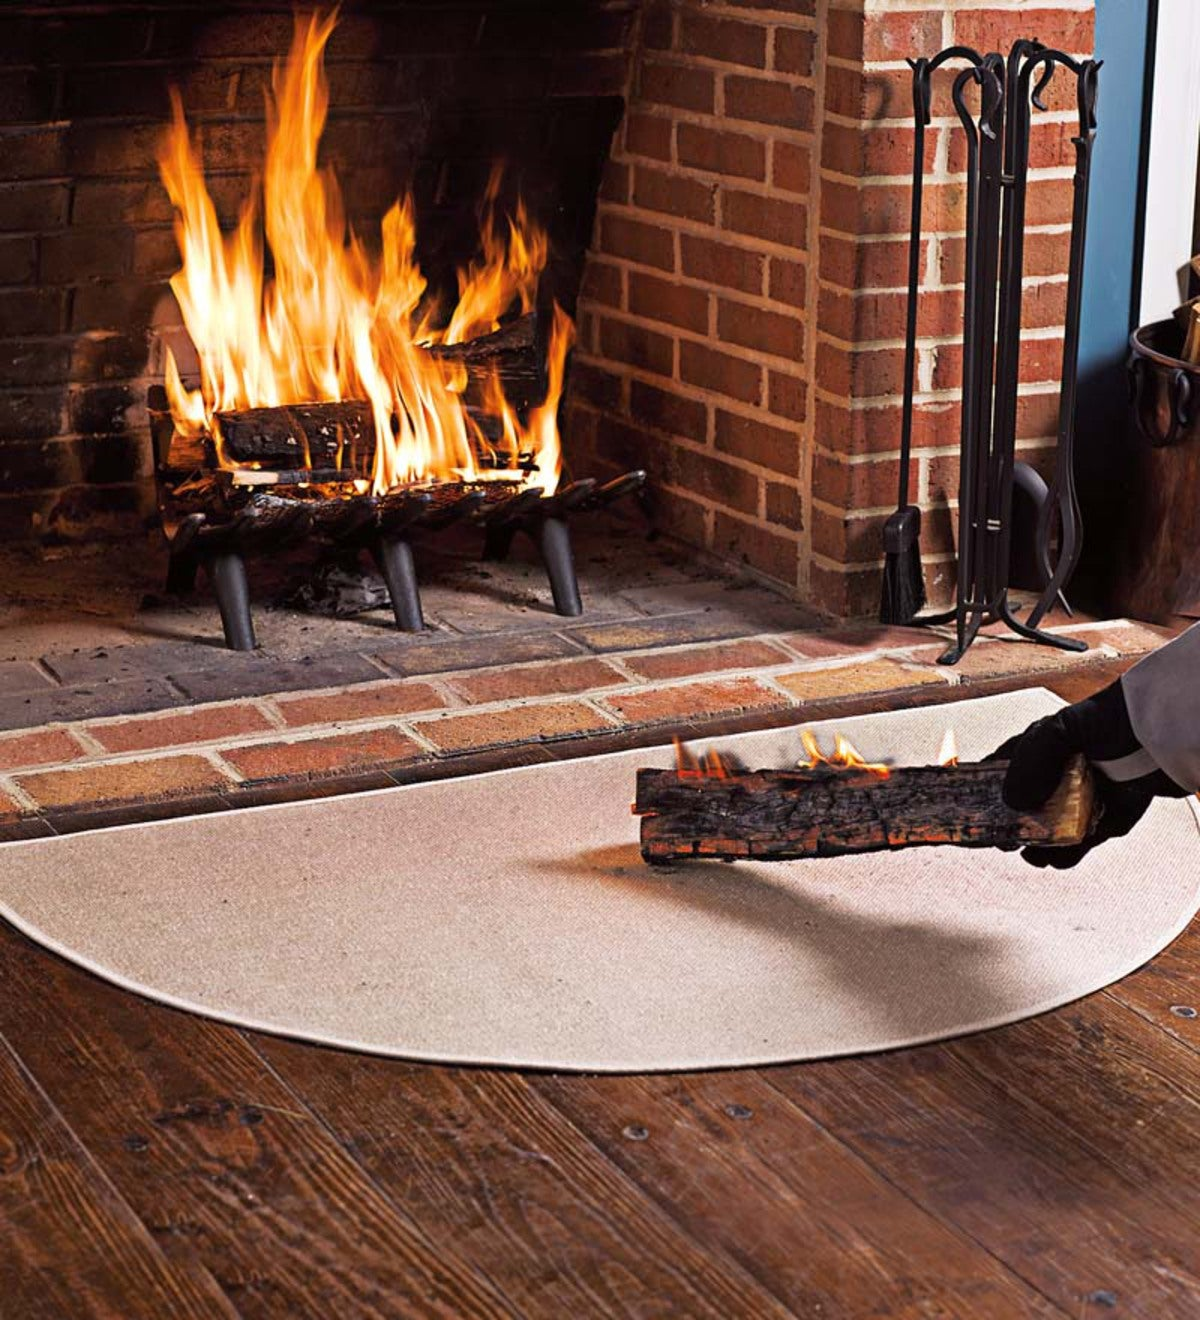 "Flame Resistant Fiberglass Half Round Hearth Rug, 27"" x 48"""